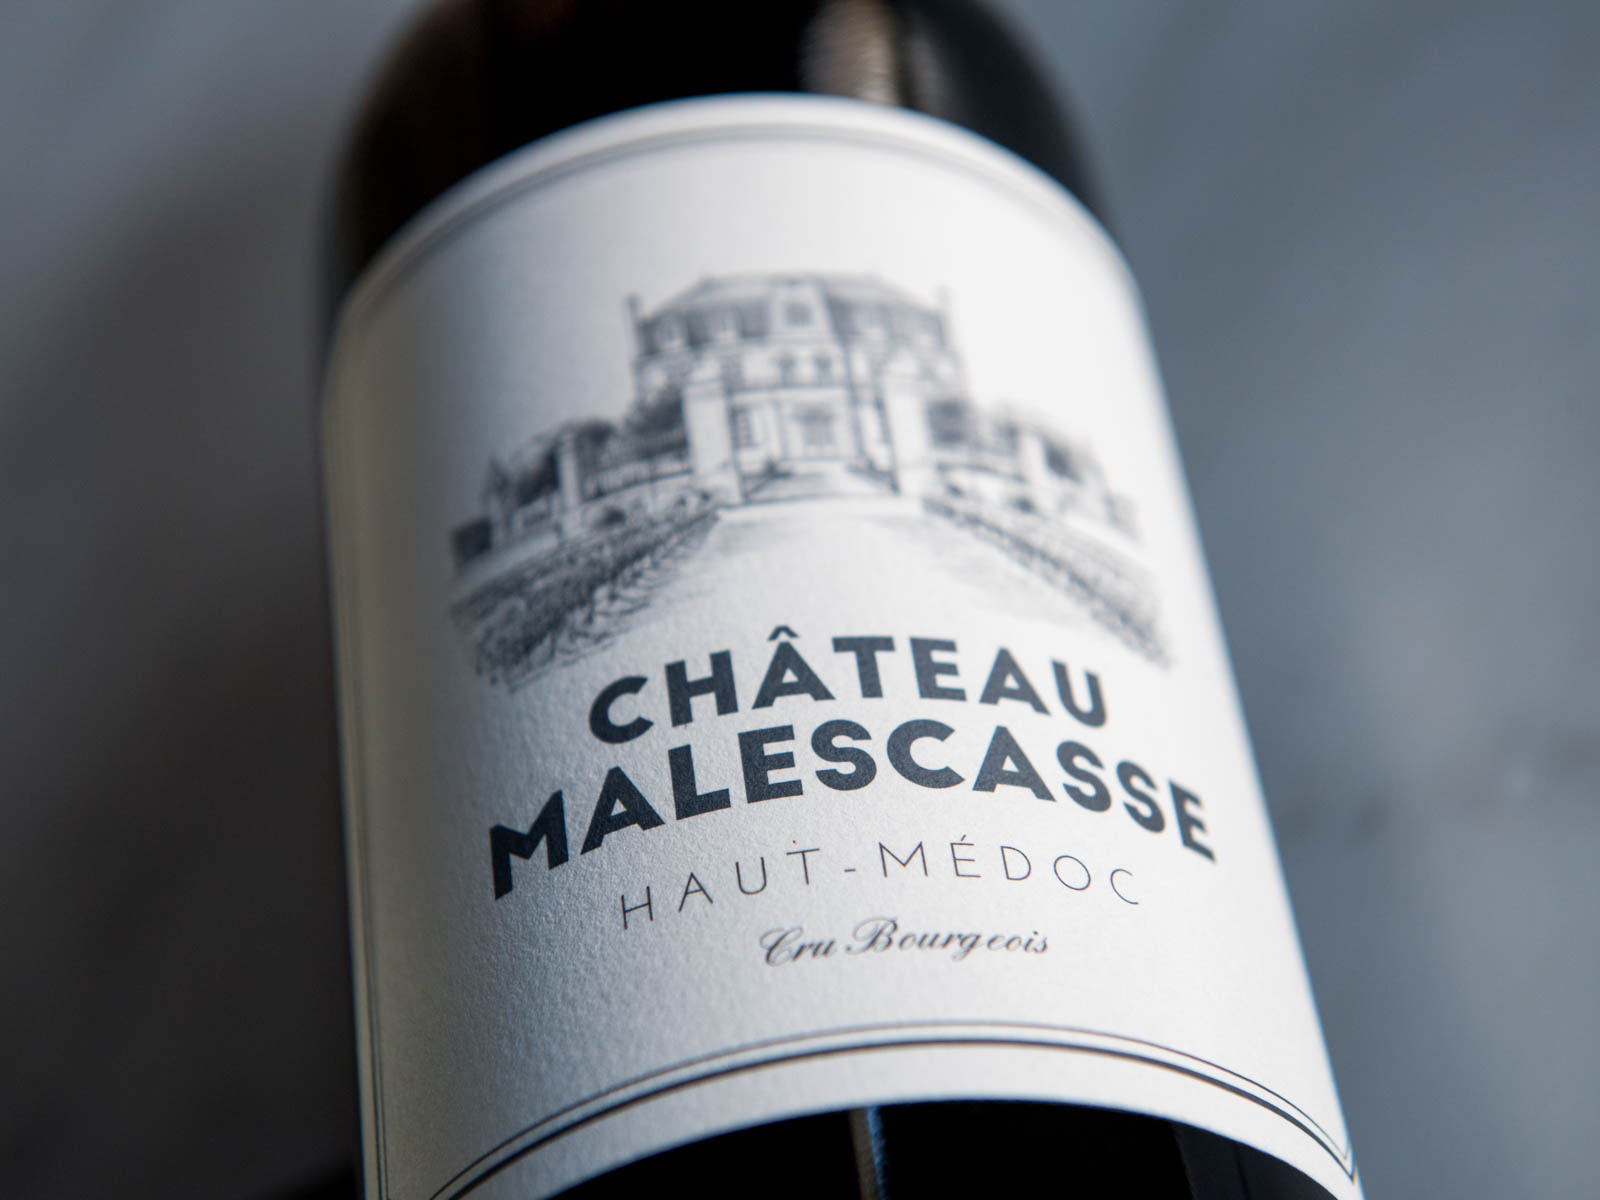 Chateau Malescasse 2016 Haut-Medoc